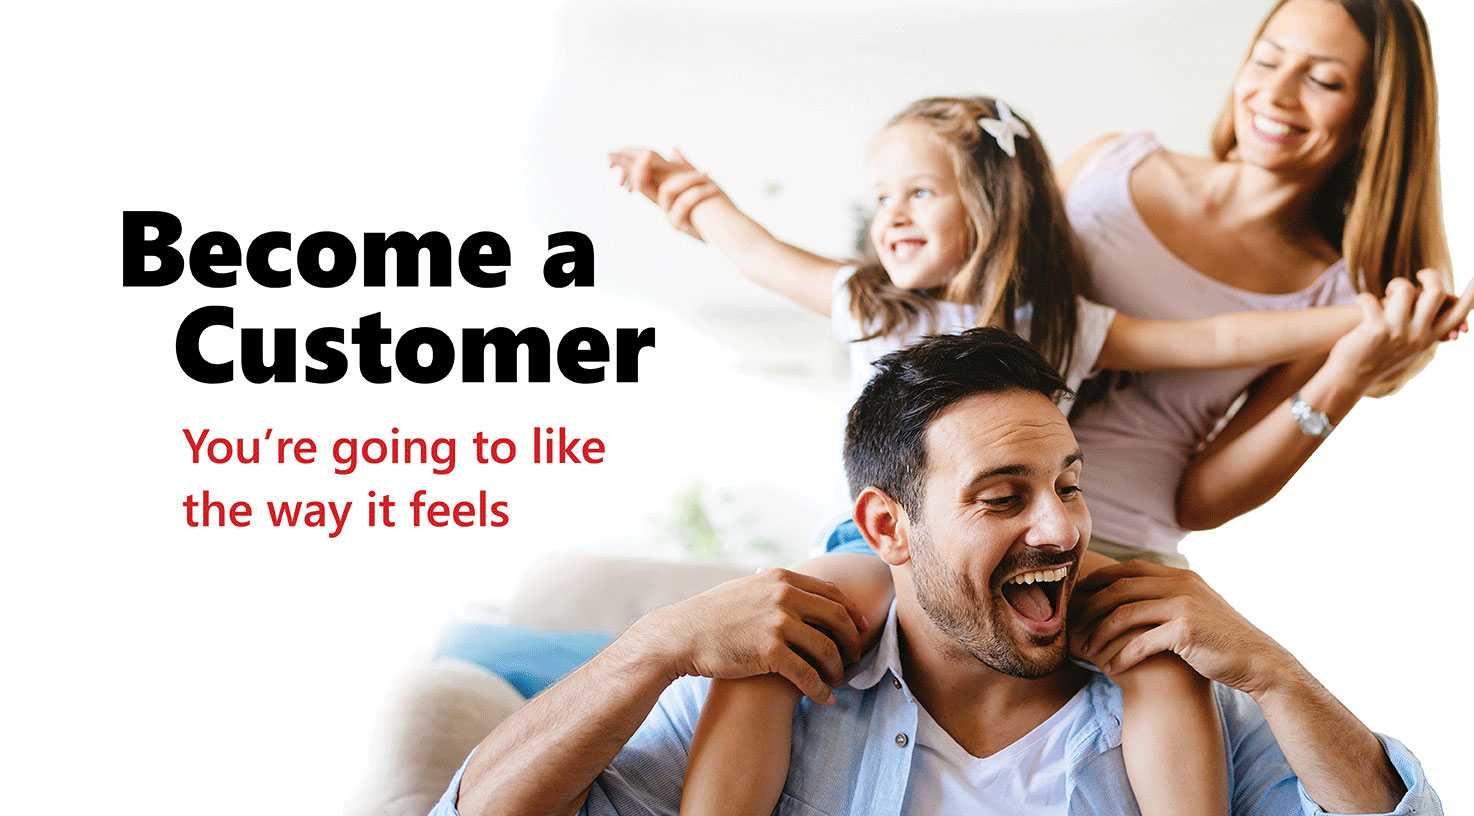 Become a new customer at Colby & Gale!